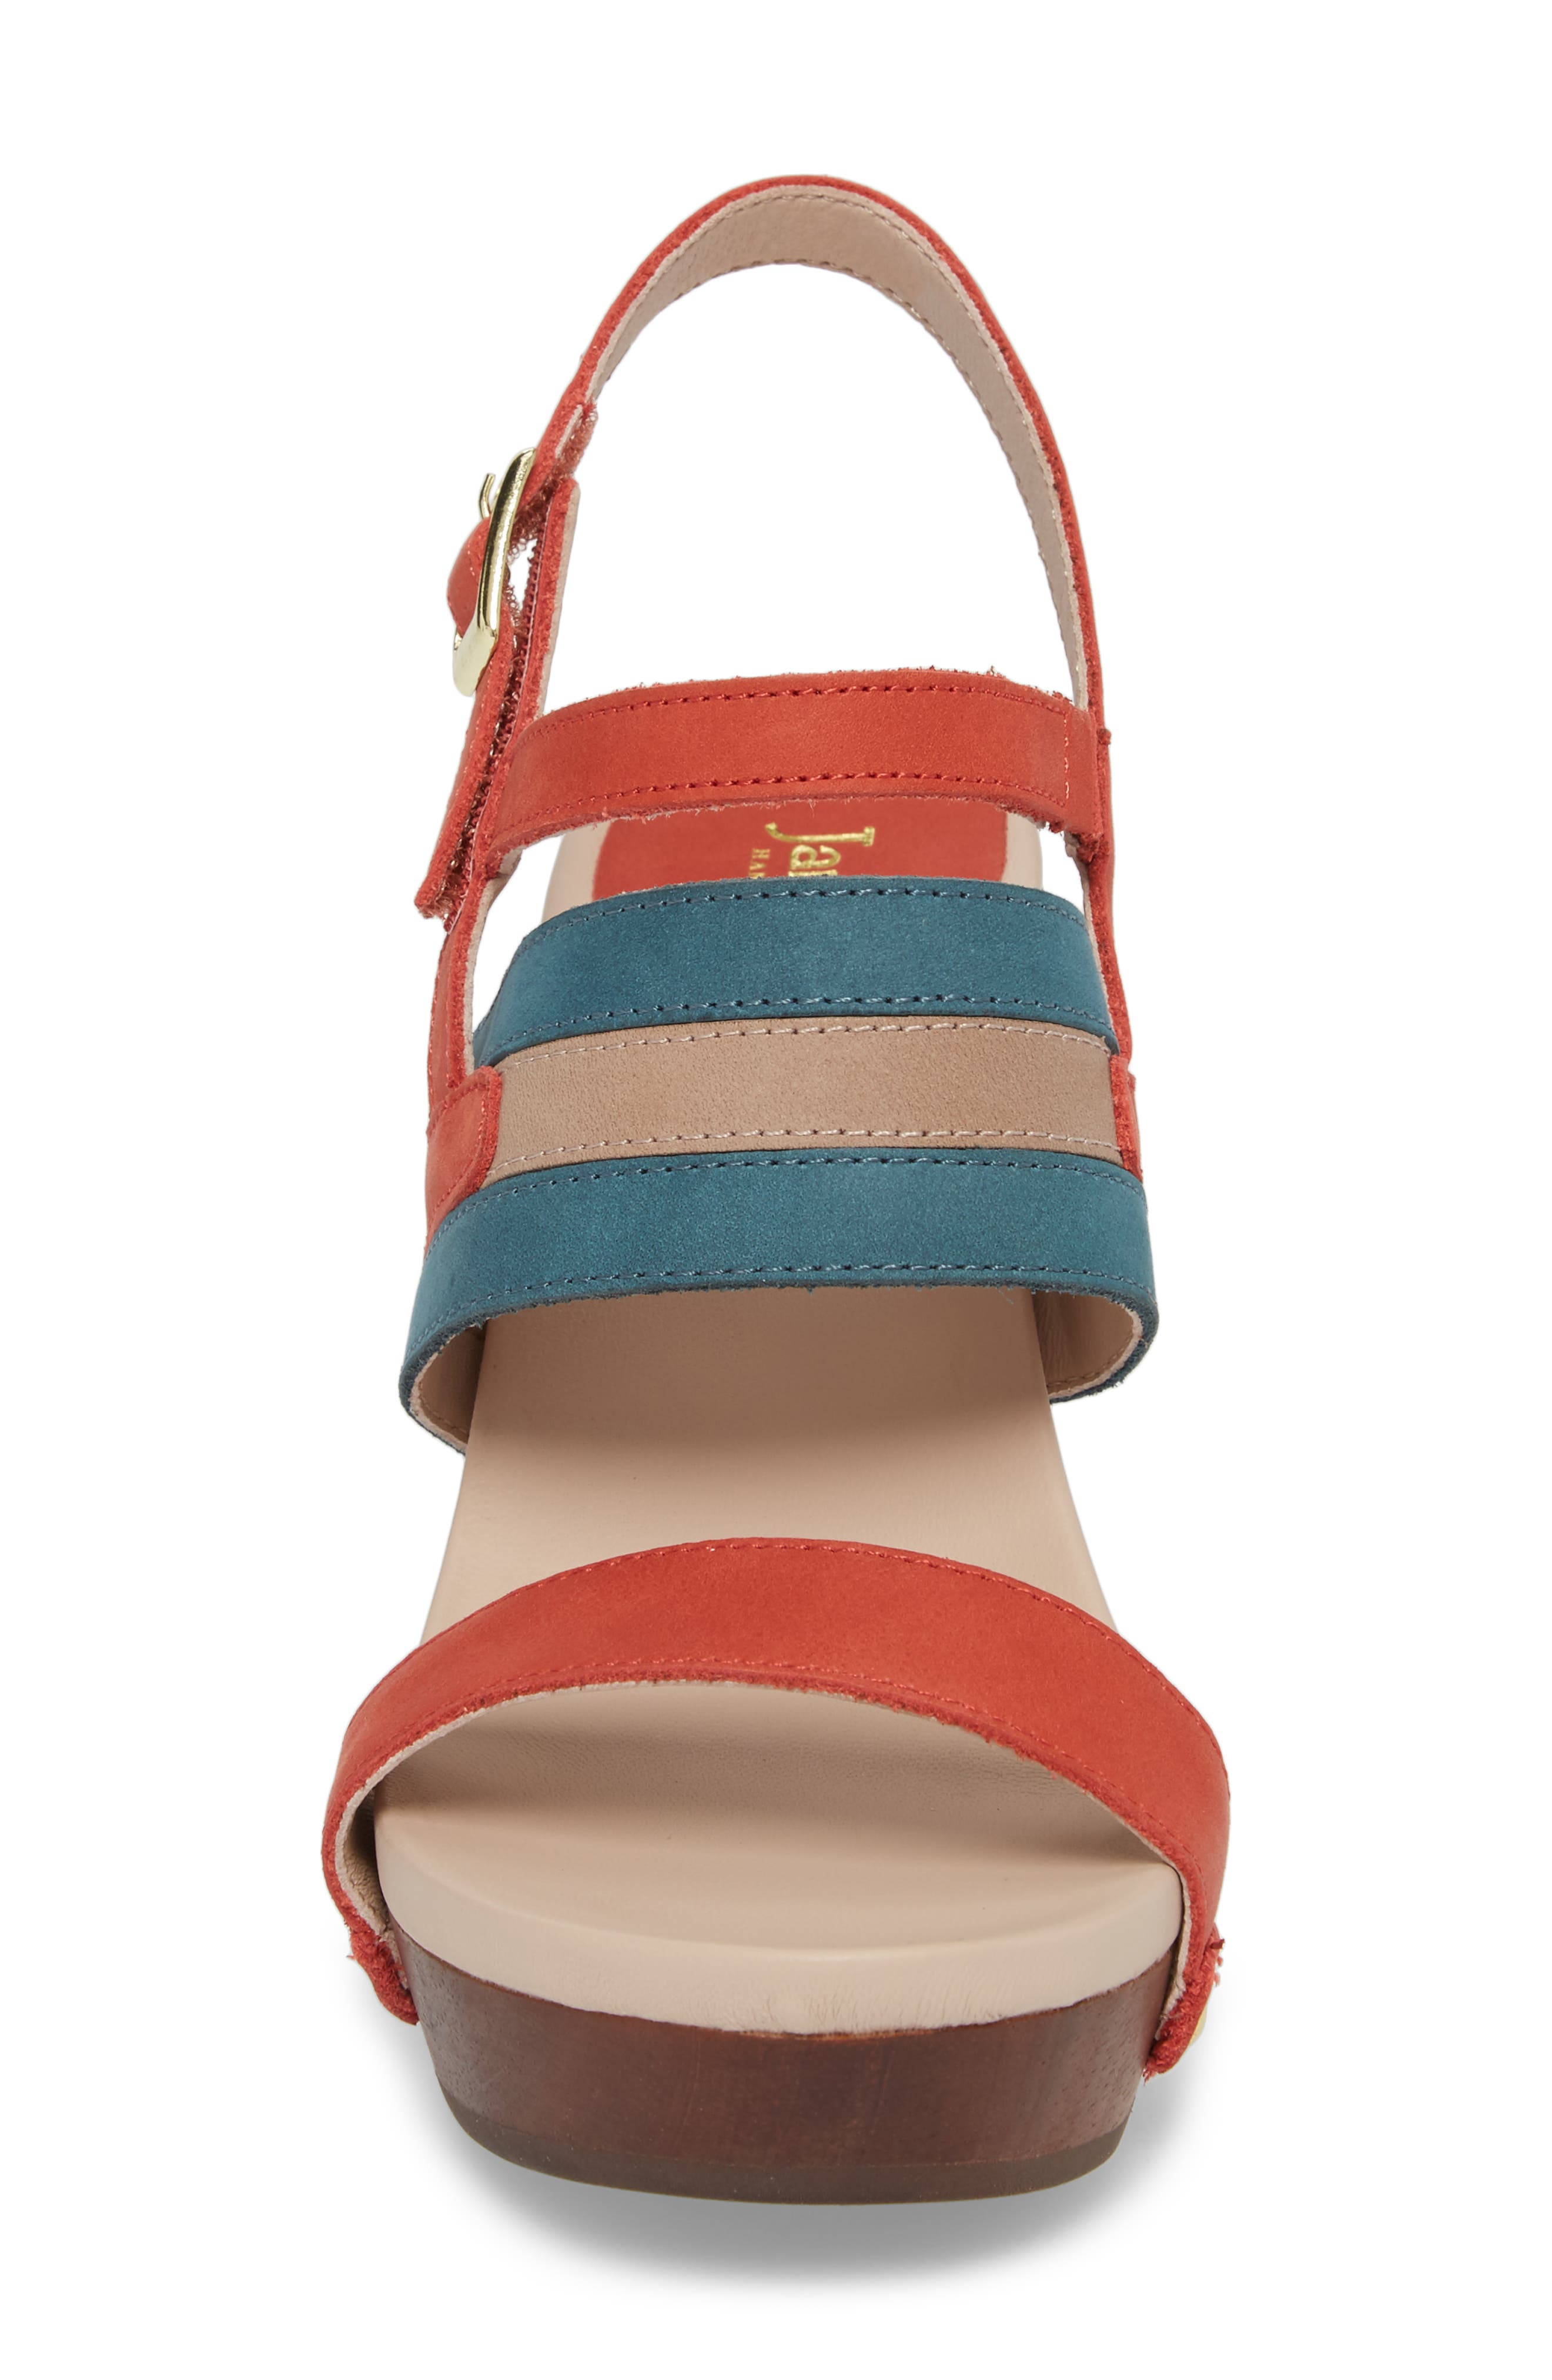 Viola Platform Sandal,                             Alternate thumbnail 4, color,                             Coral/ Teal Nubuck